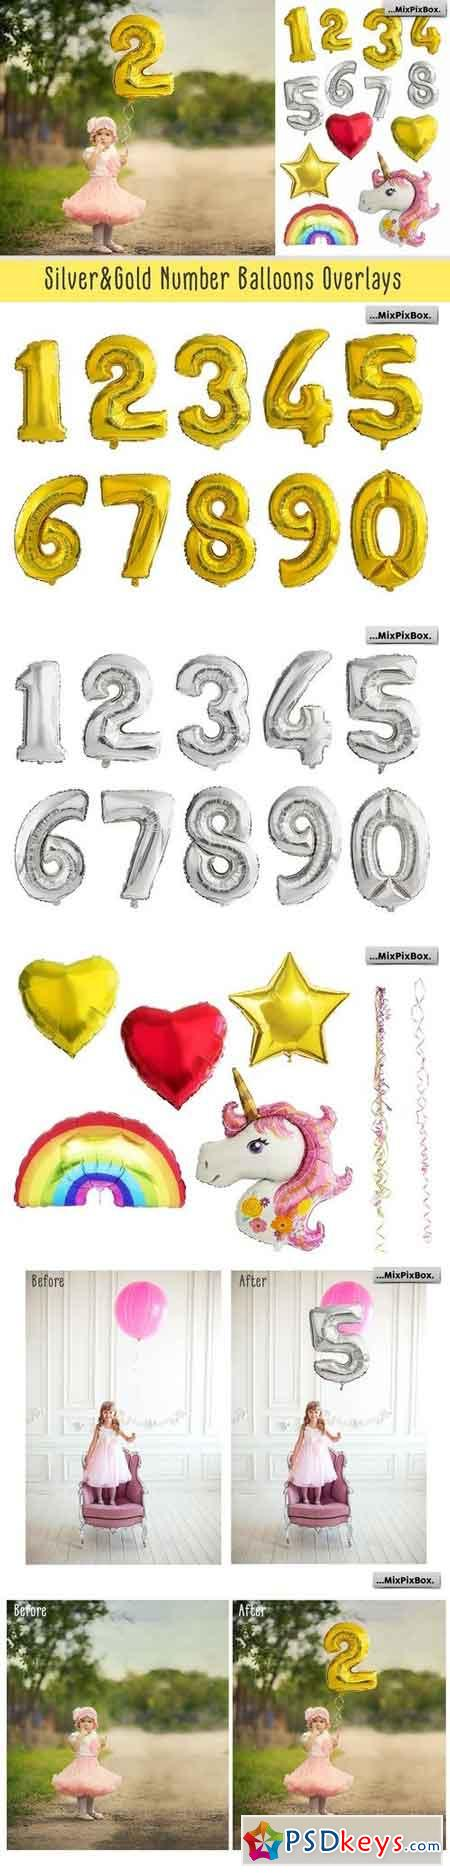 Shaped Number Balloons Overlays 2570490